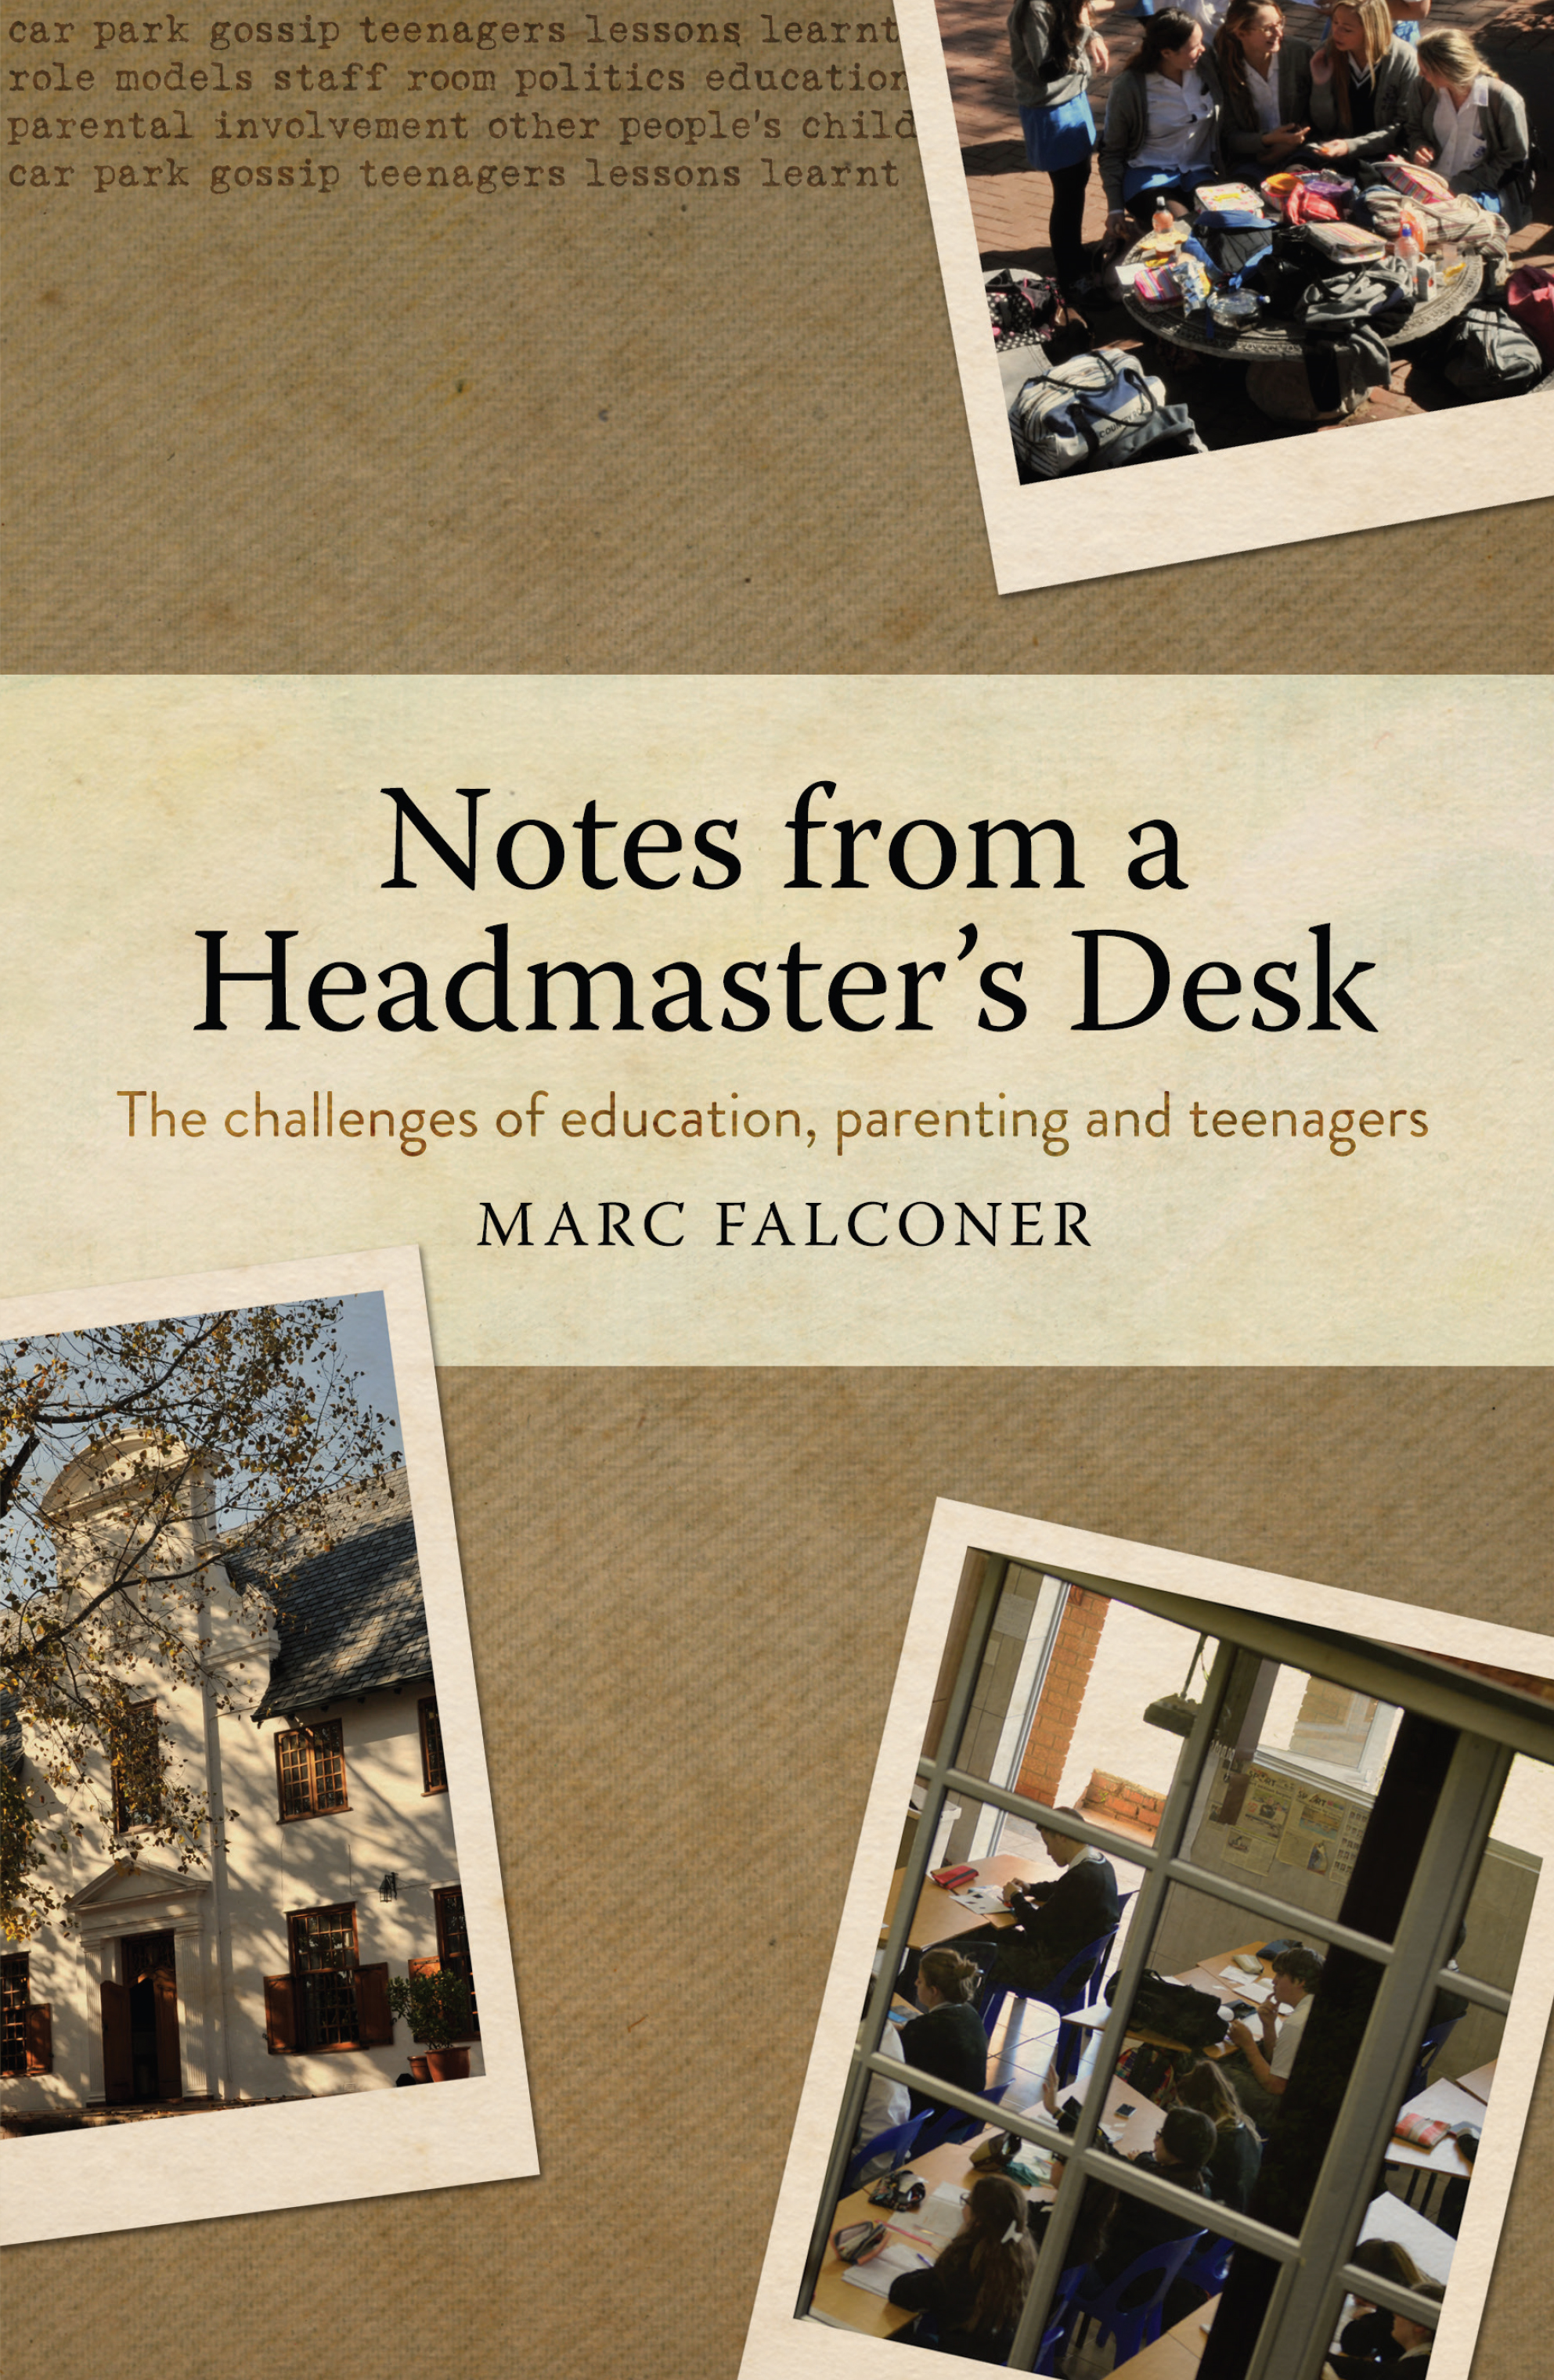 Notes from a Headmaster's desk The challenges of education, parenting and teenagers